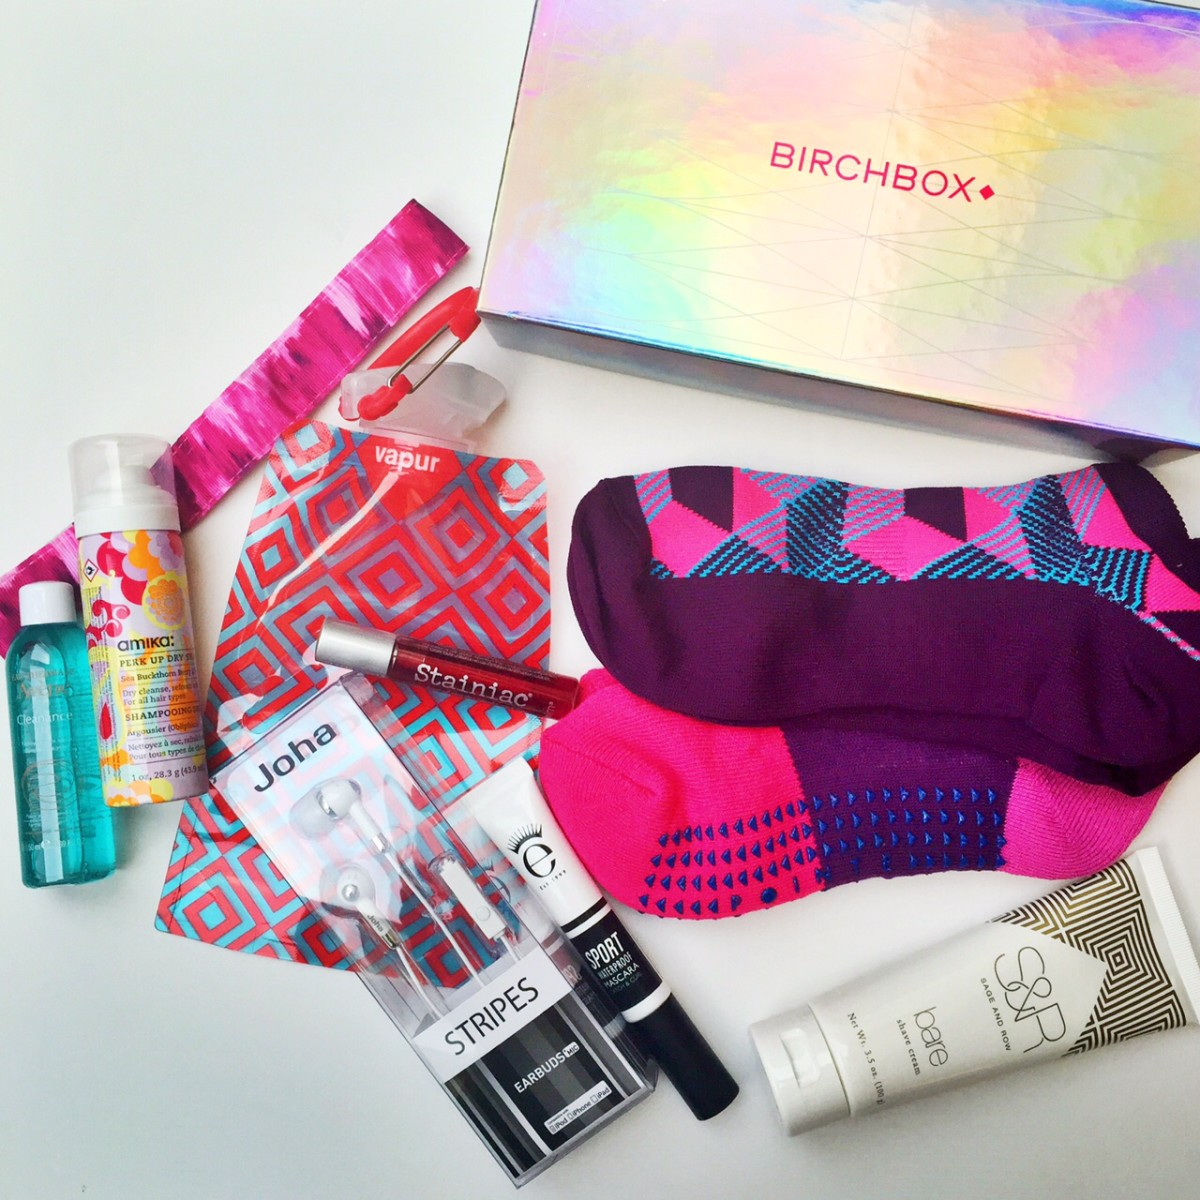 Get Into Birchbox's Gym Bag Heroes Limited Edition Box